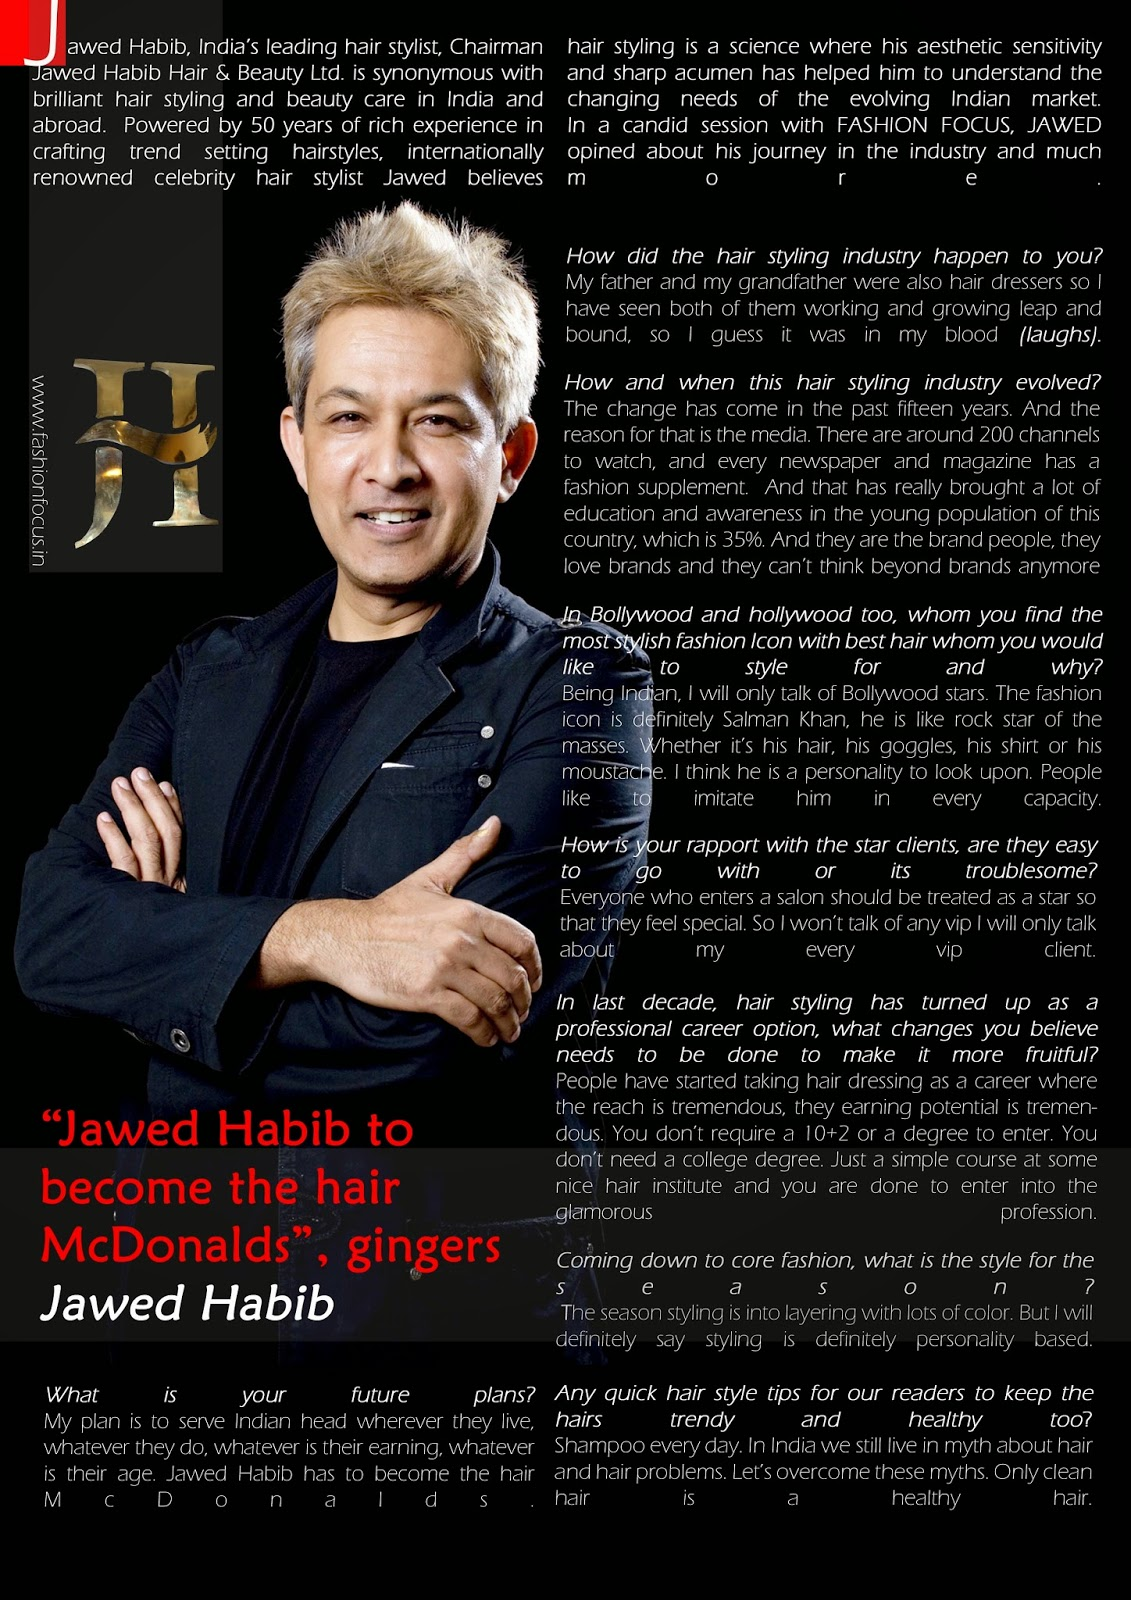 Excl Jawed Habib To Become The Hair Mcdonalds Gingers Jawed